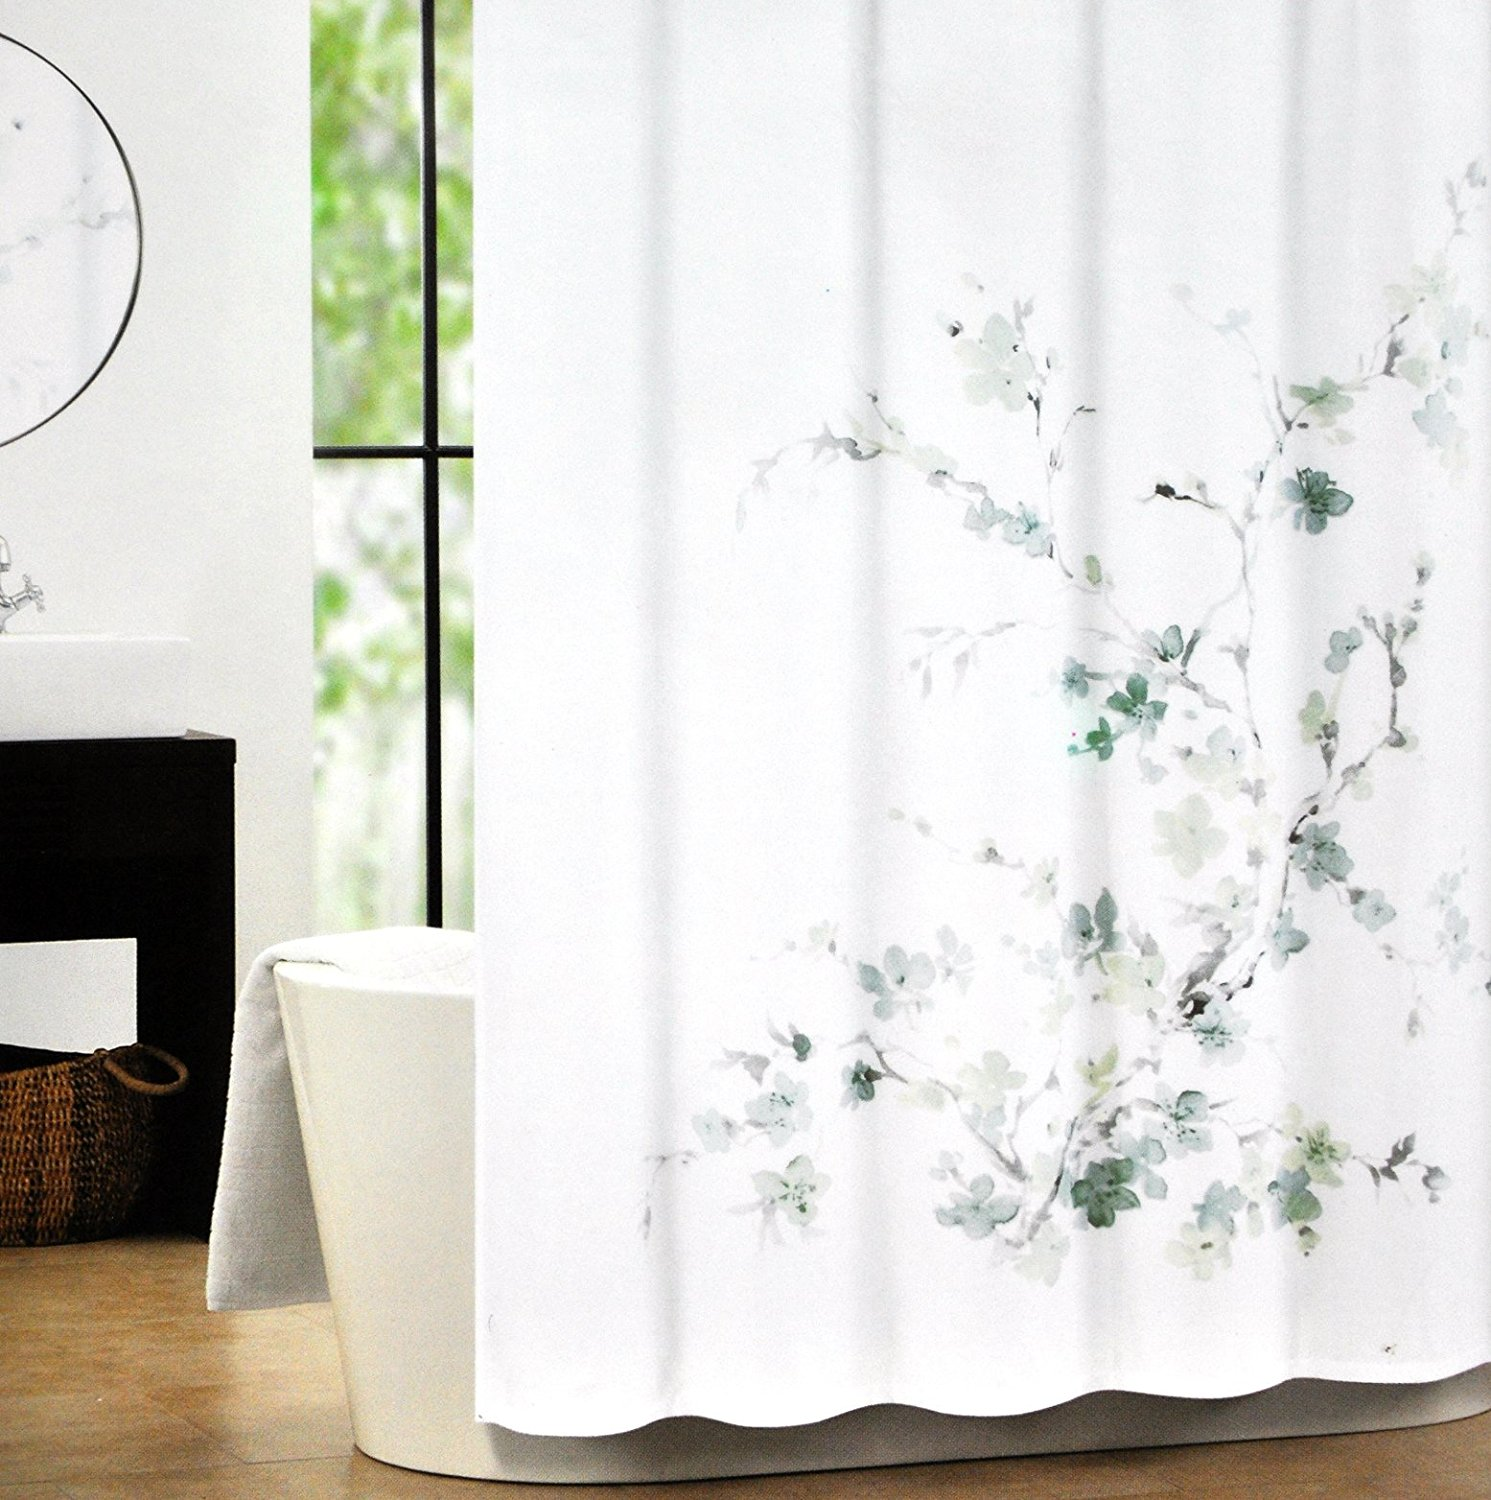 Get Quotations Tahari Luxury Cotton Blend Shower Curtain Printemps Gray Aqua Sage Floral Branches By Home